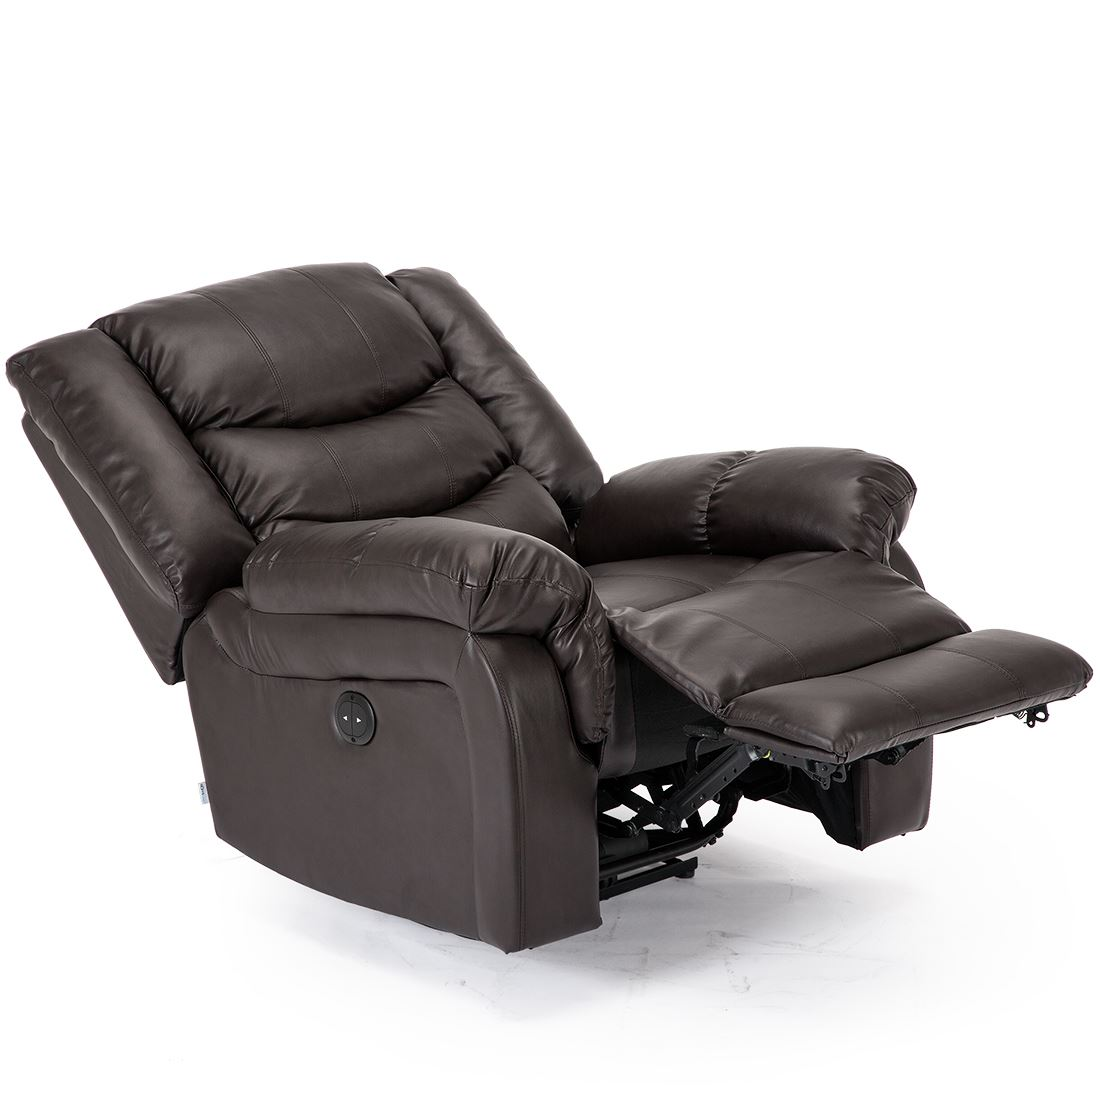 Auto Sofa Seattle Electric Leather Auto Recliner Armchair Sofa Home